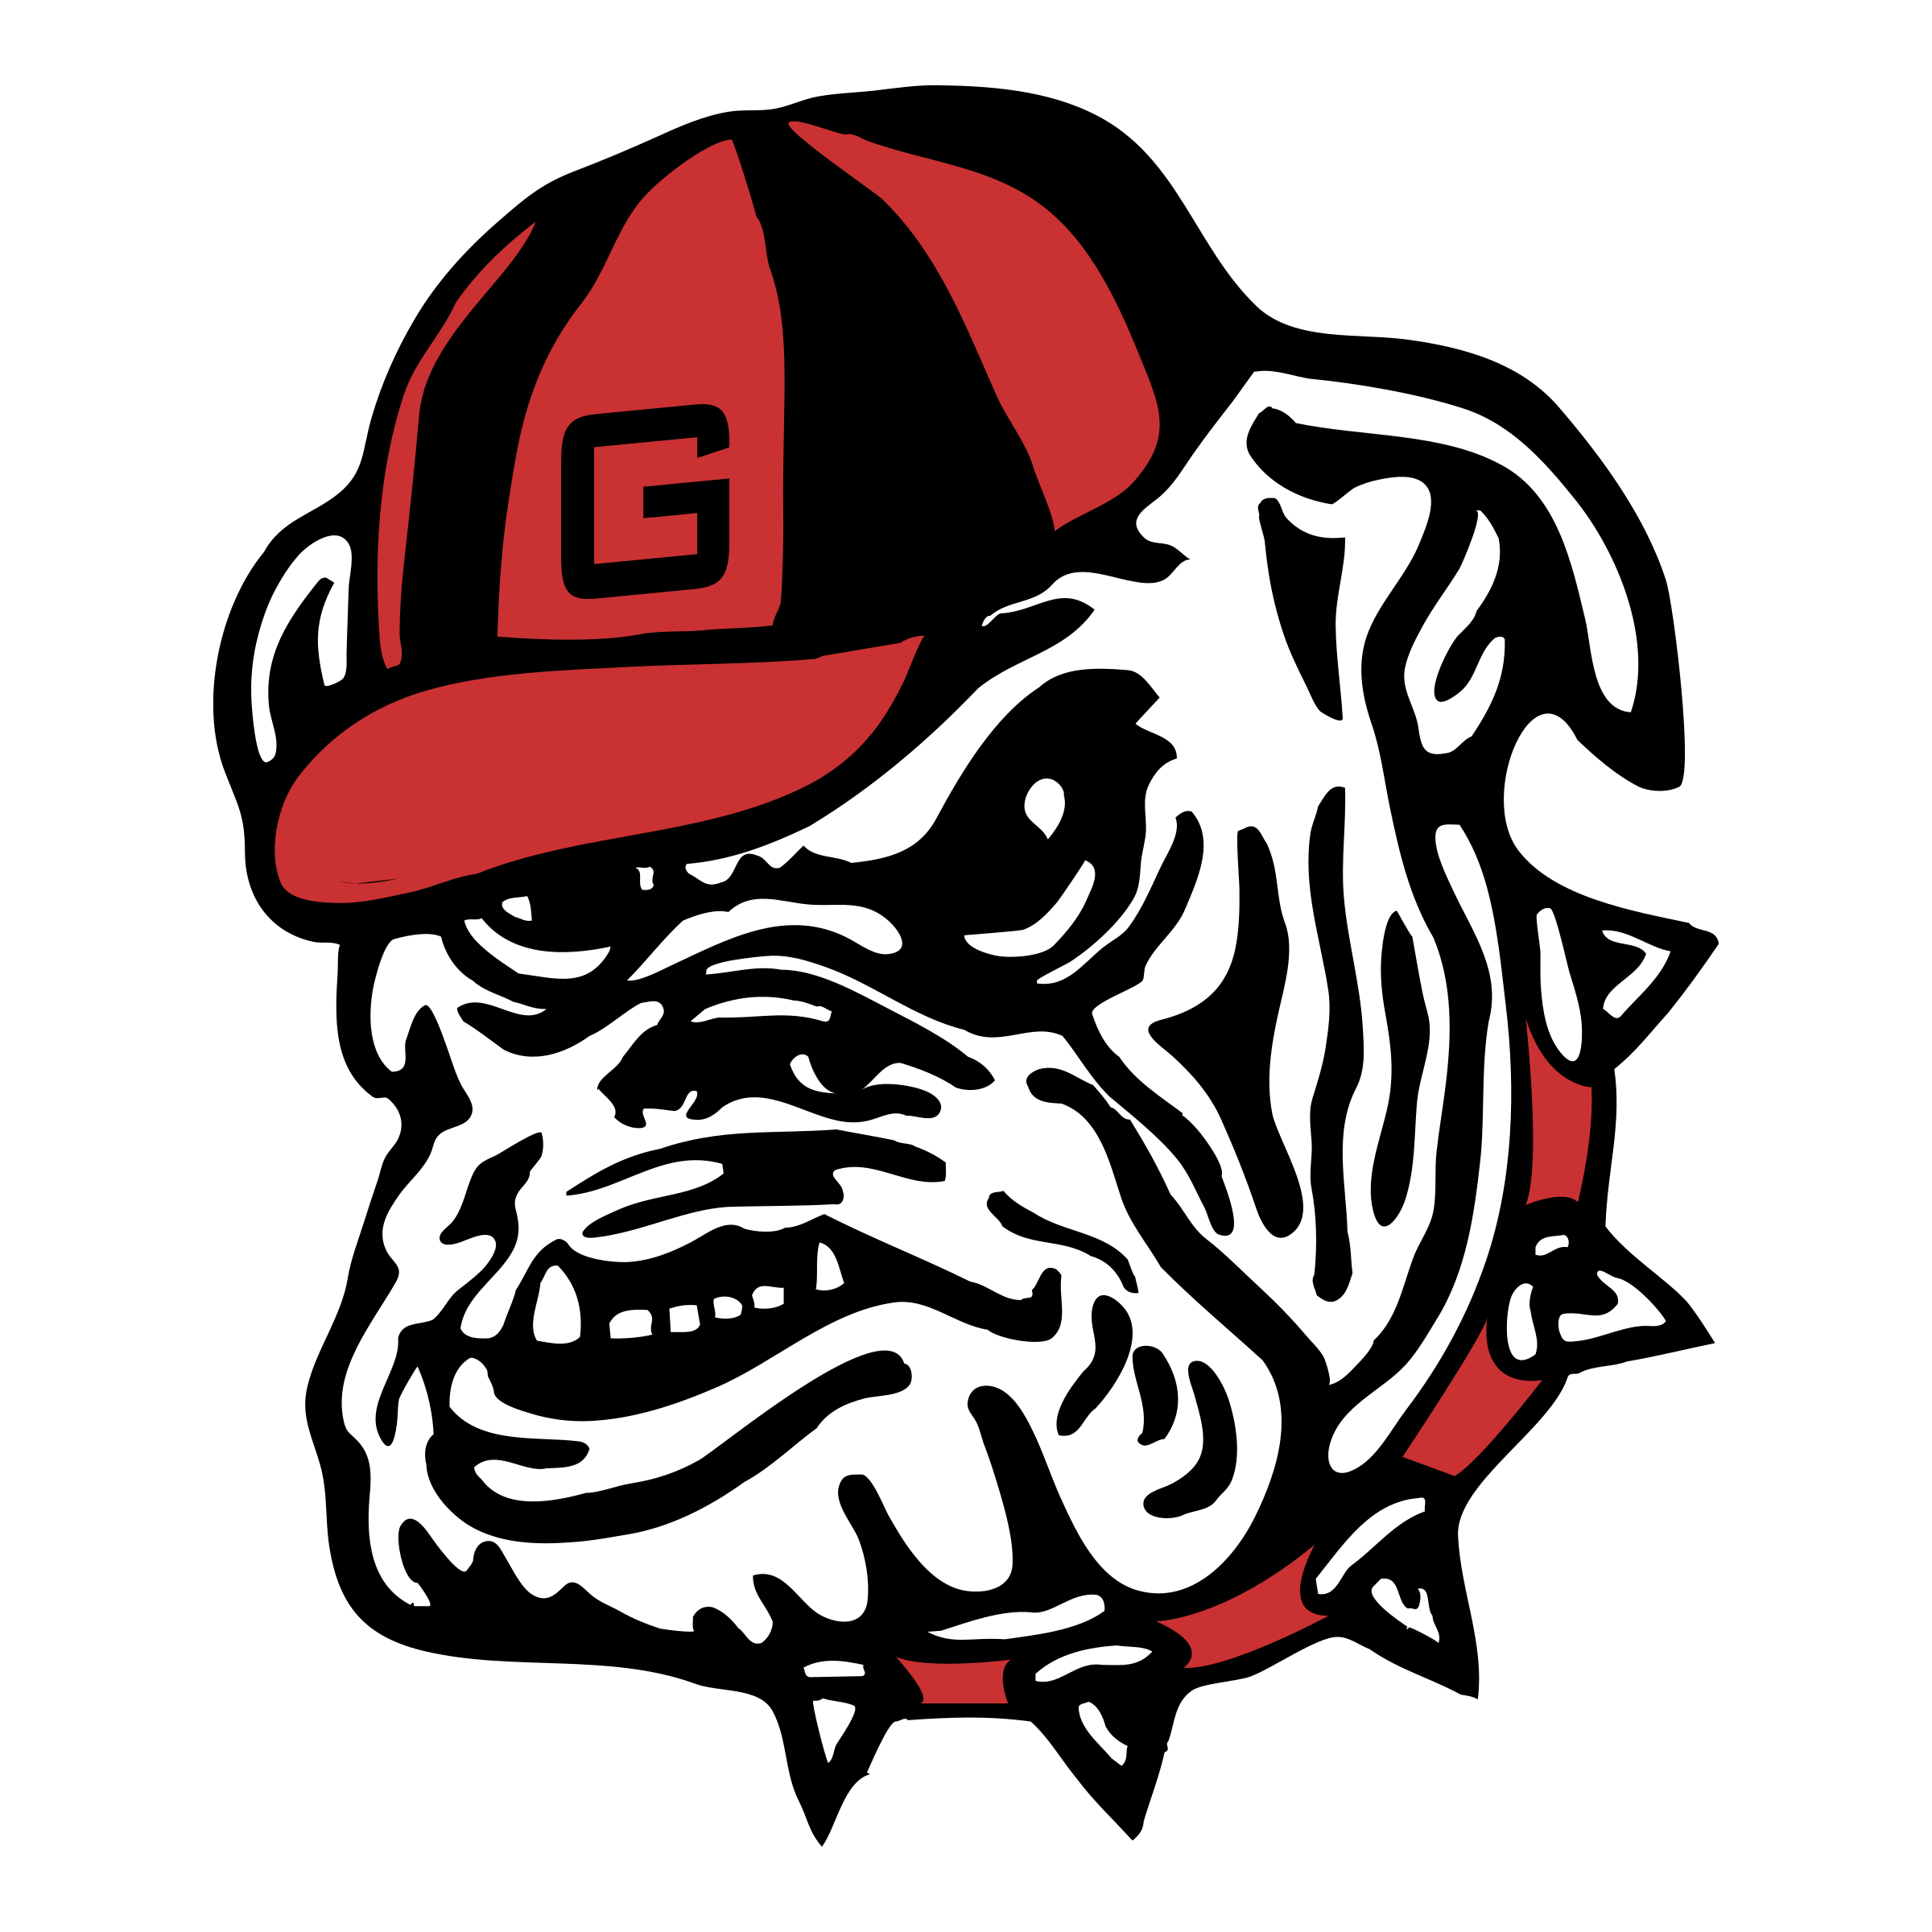 Clipart at getdrawings com. Drawing bulldogs georgia picture freeuse stock